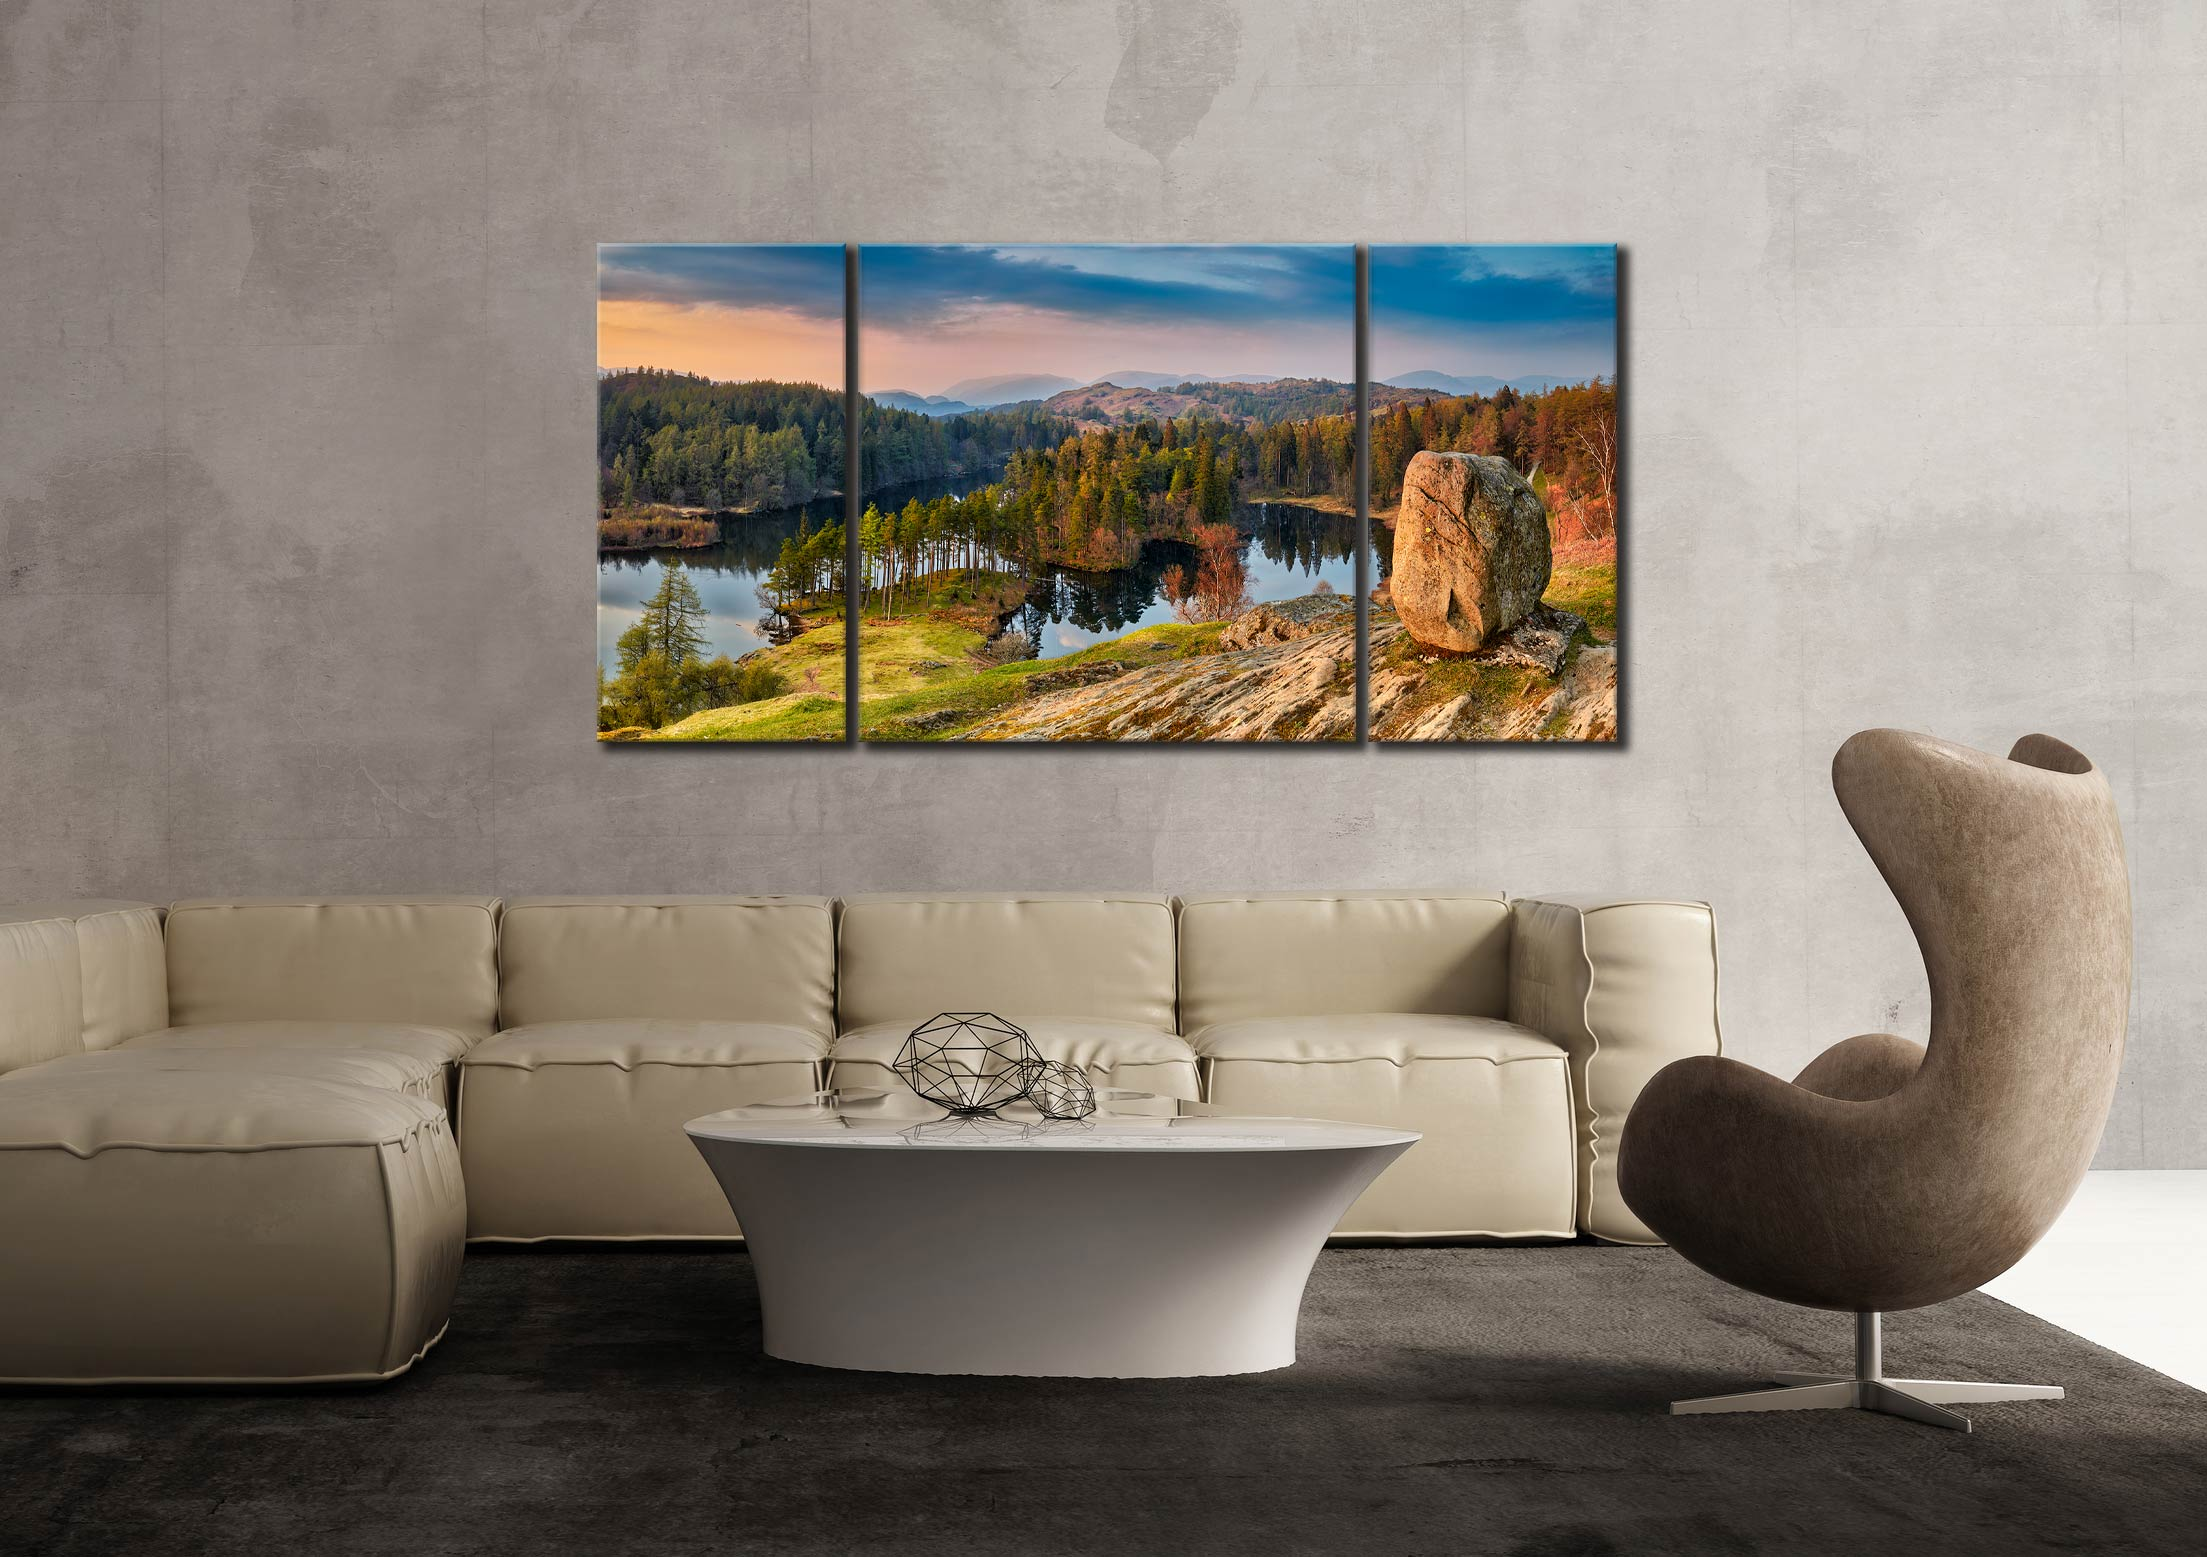 Dusk at Tarn Hows - 3 Panel Wide Centre Canvas on Wall